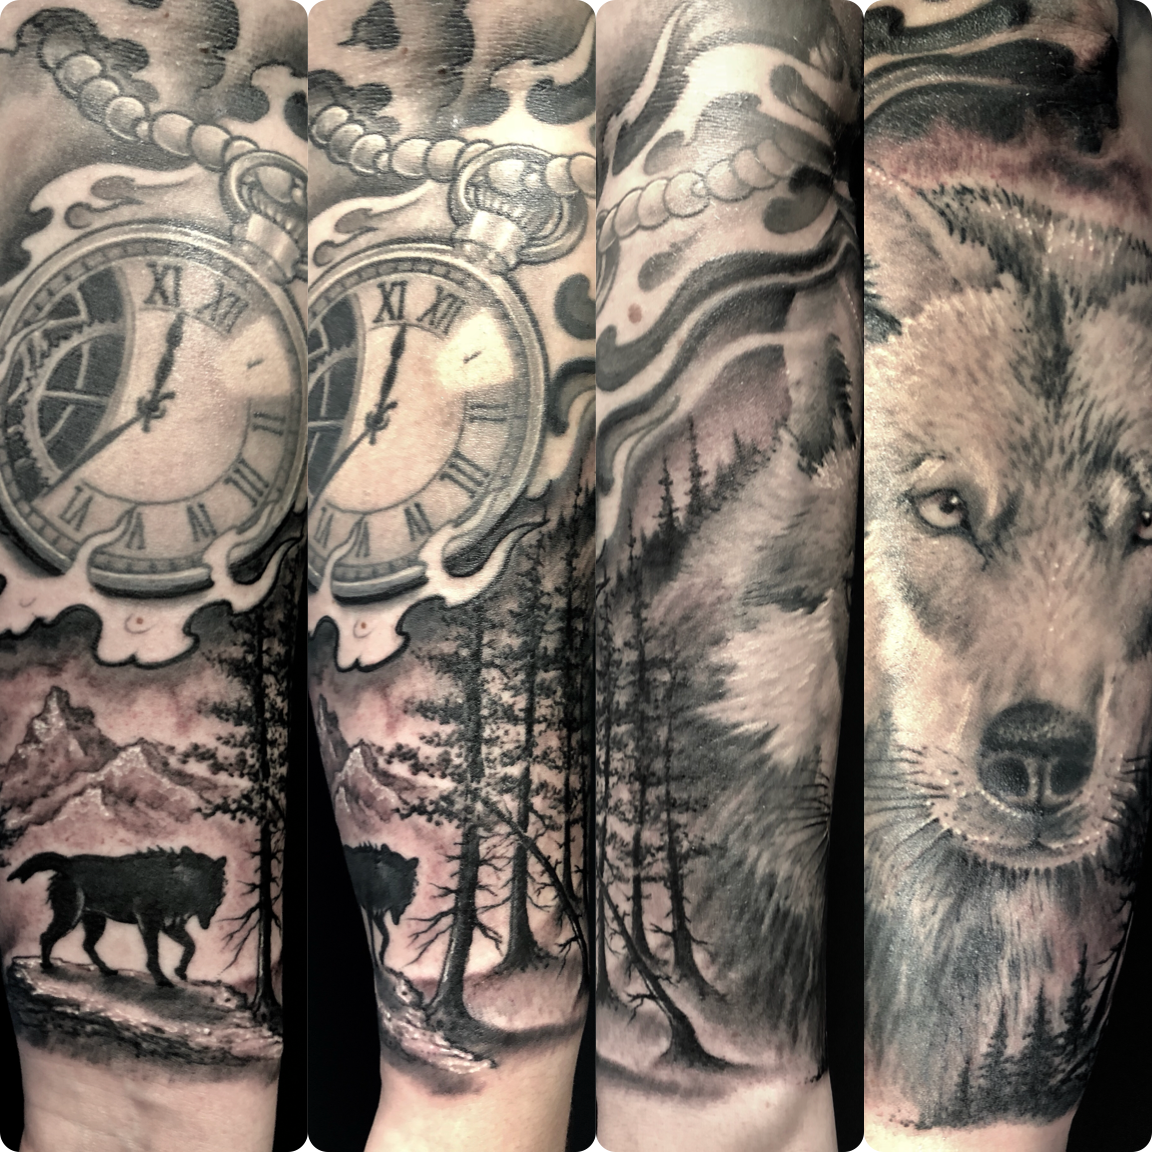 Norman's Tattoo & Art Gallery - Norman Wesel